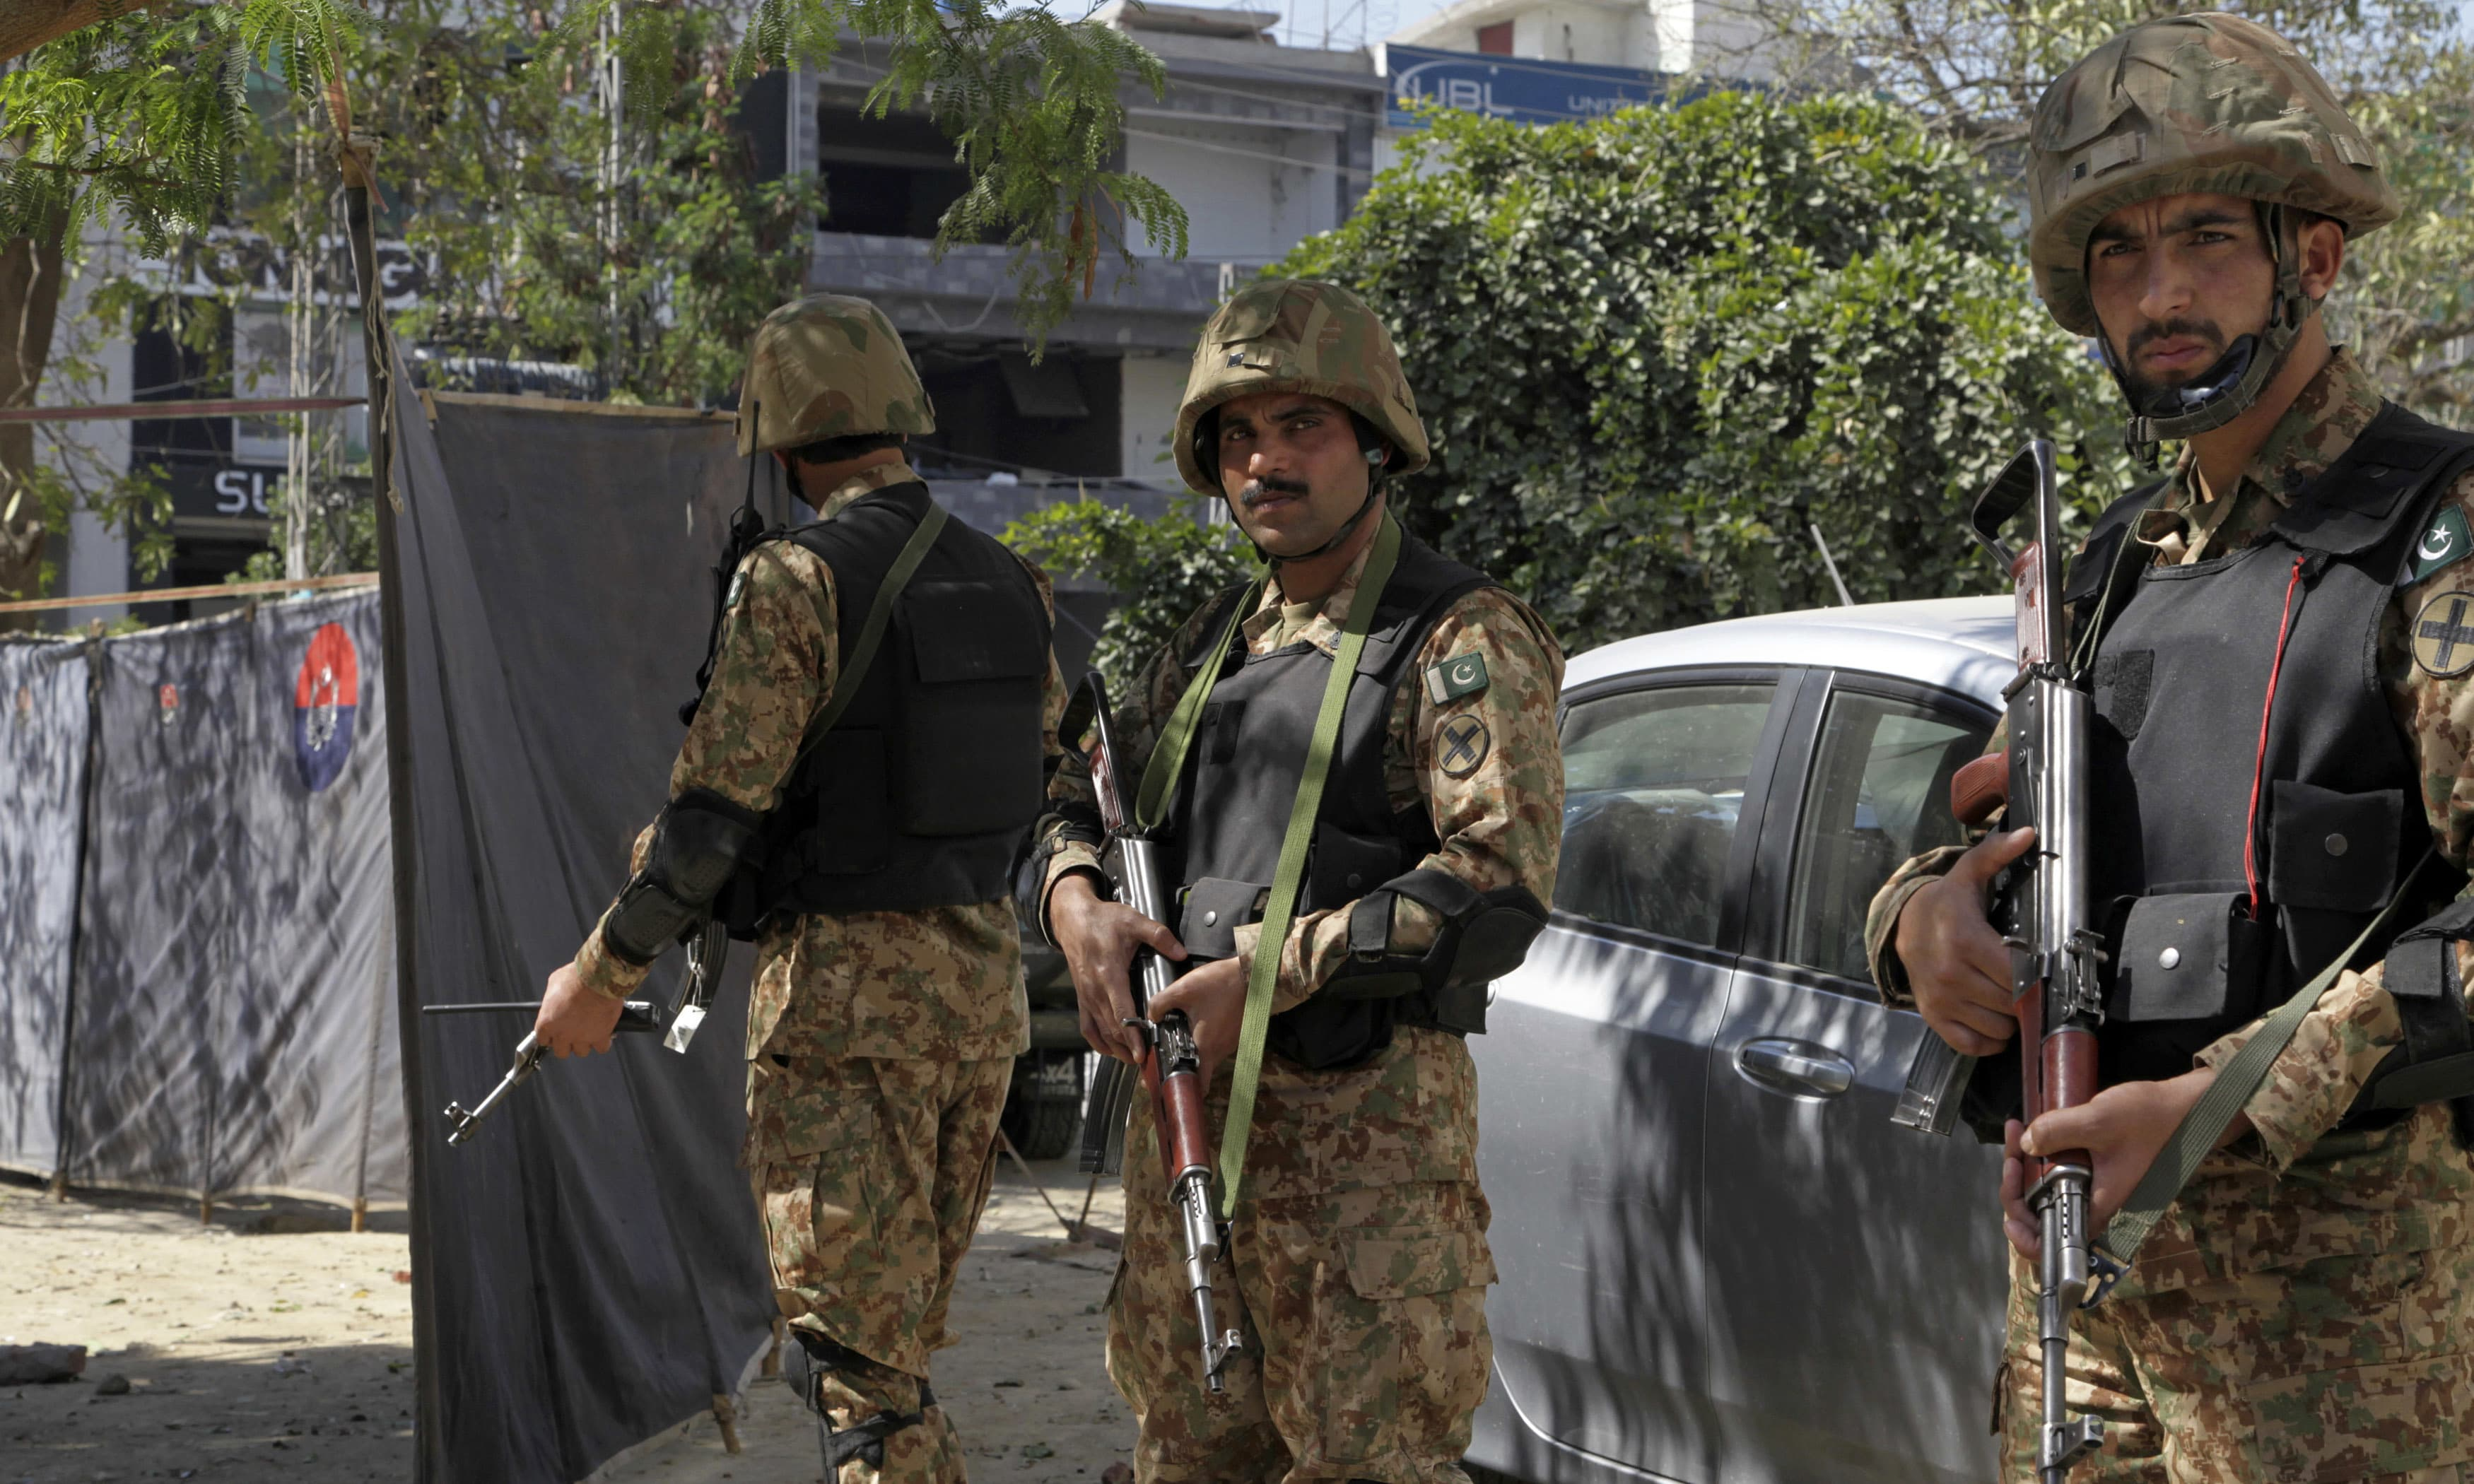 Soldiers stand alert at the site of an explosion in Lahore. —AP